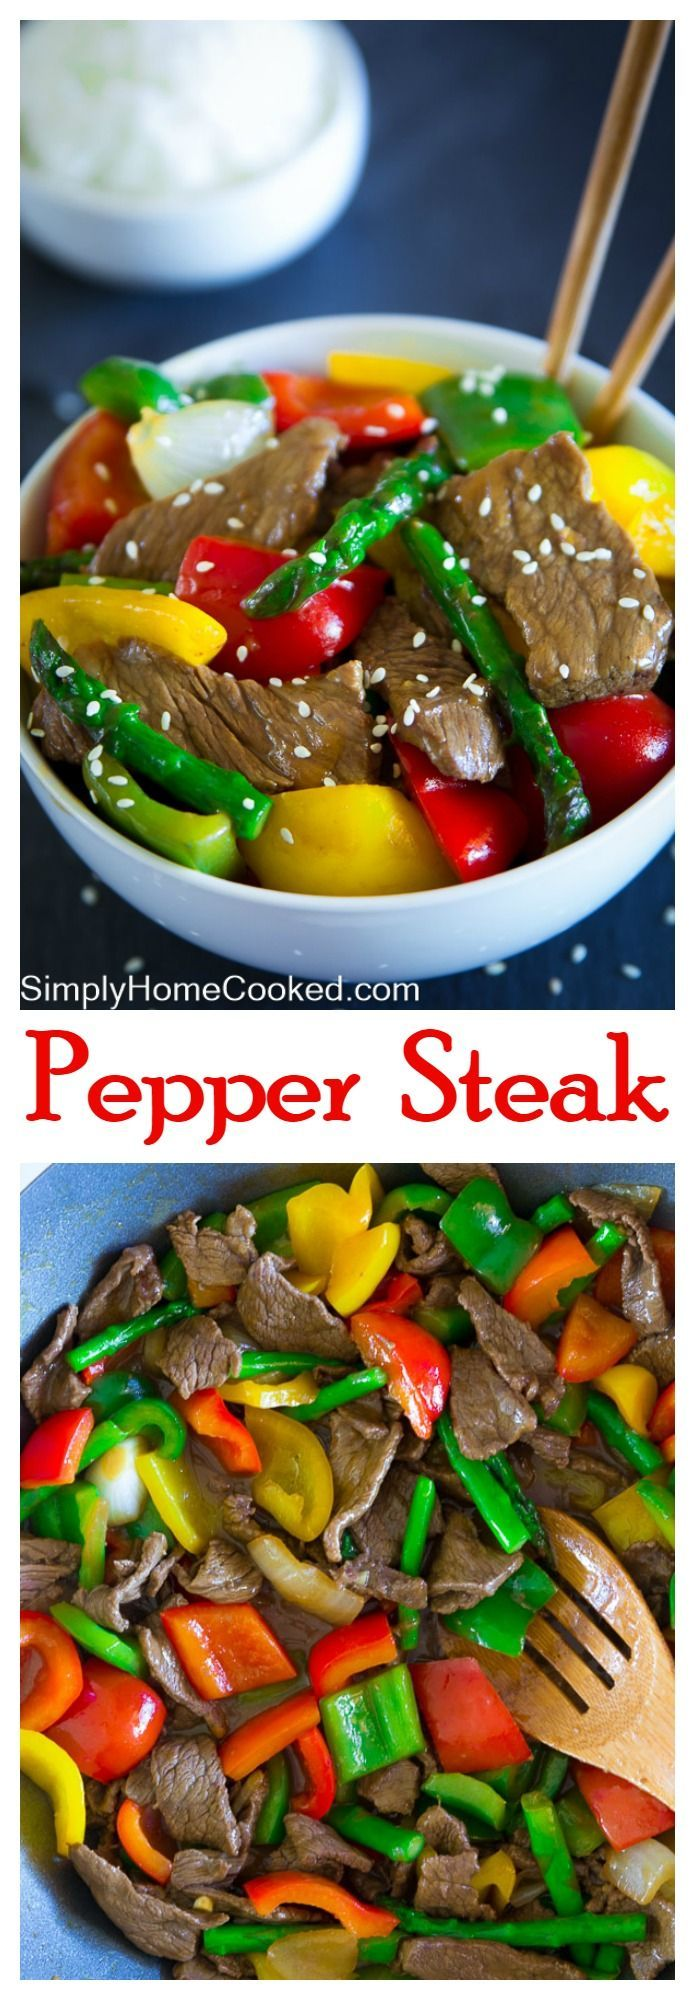 Pepper Steak - Quick and easy pepper steak can be made in less than 30 minutes. | Simply Home Cooked